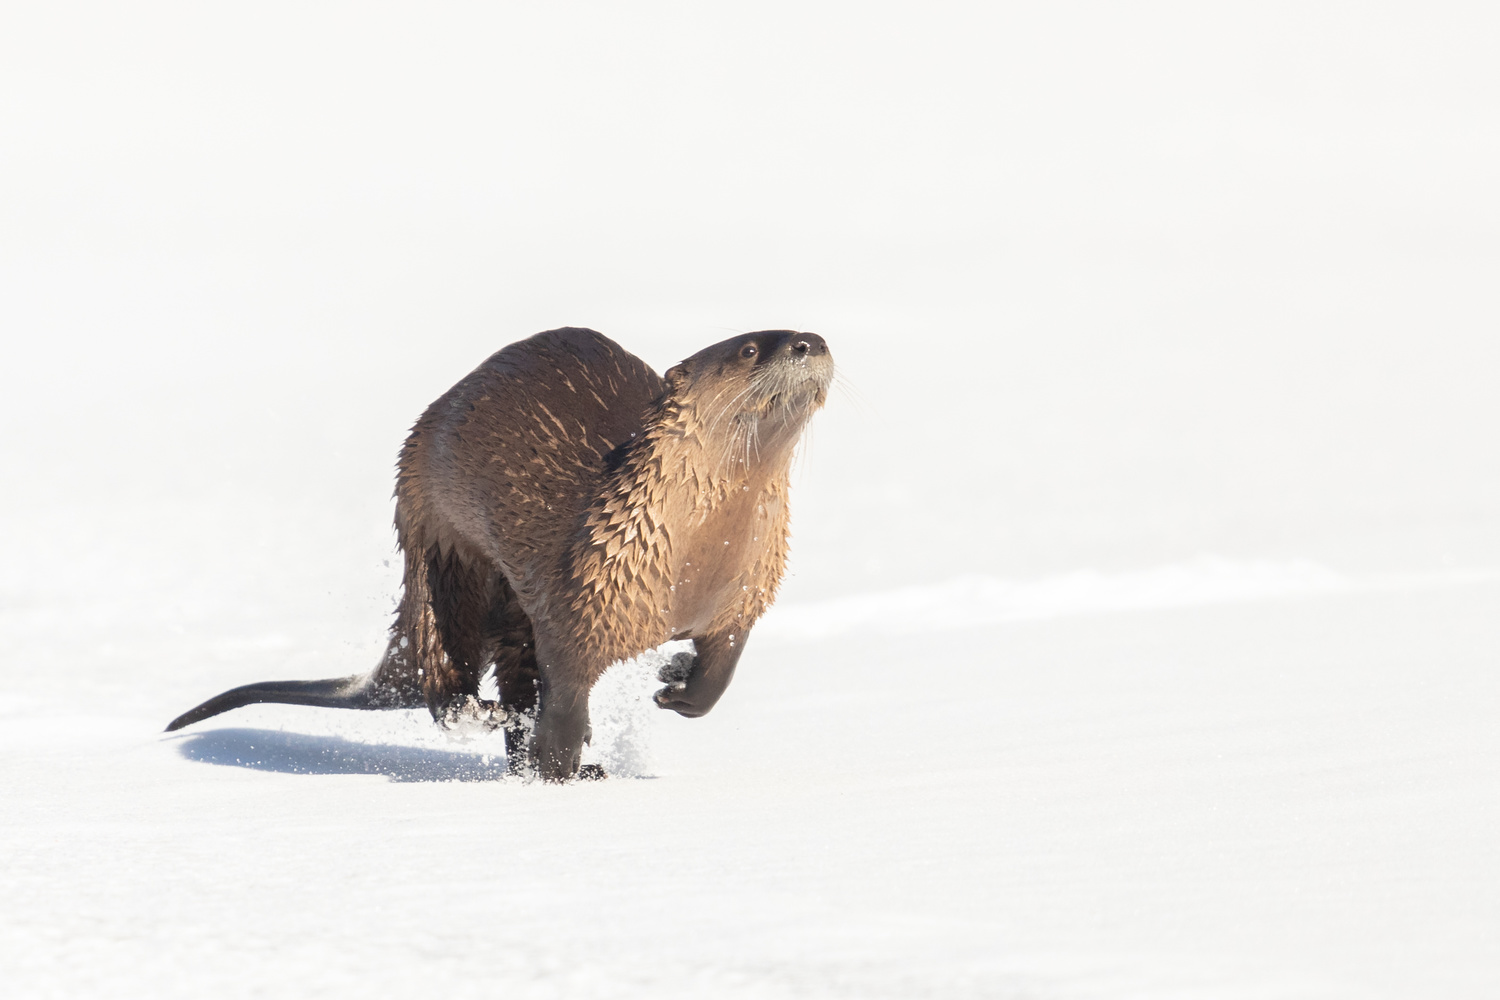 River Otter In The Snow by Kyle Rohlfing